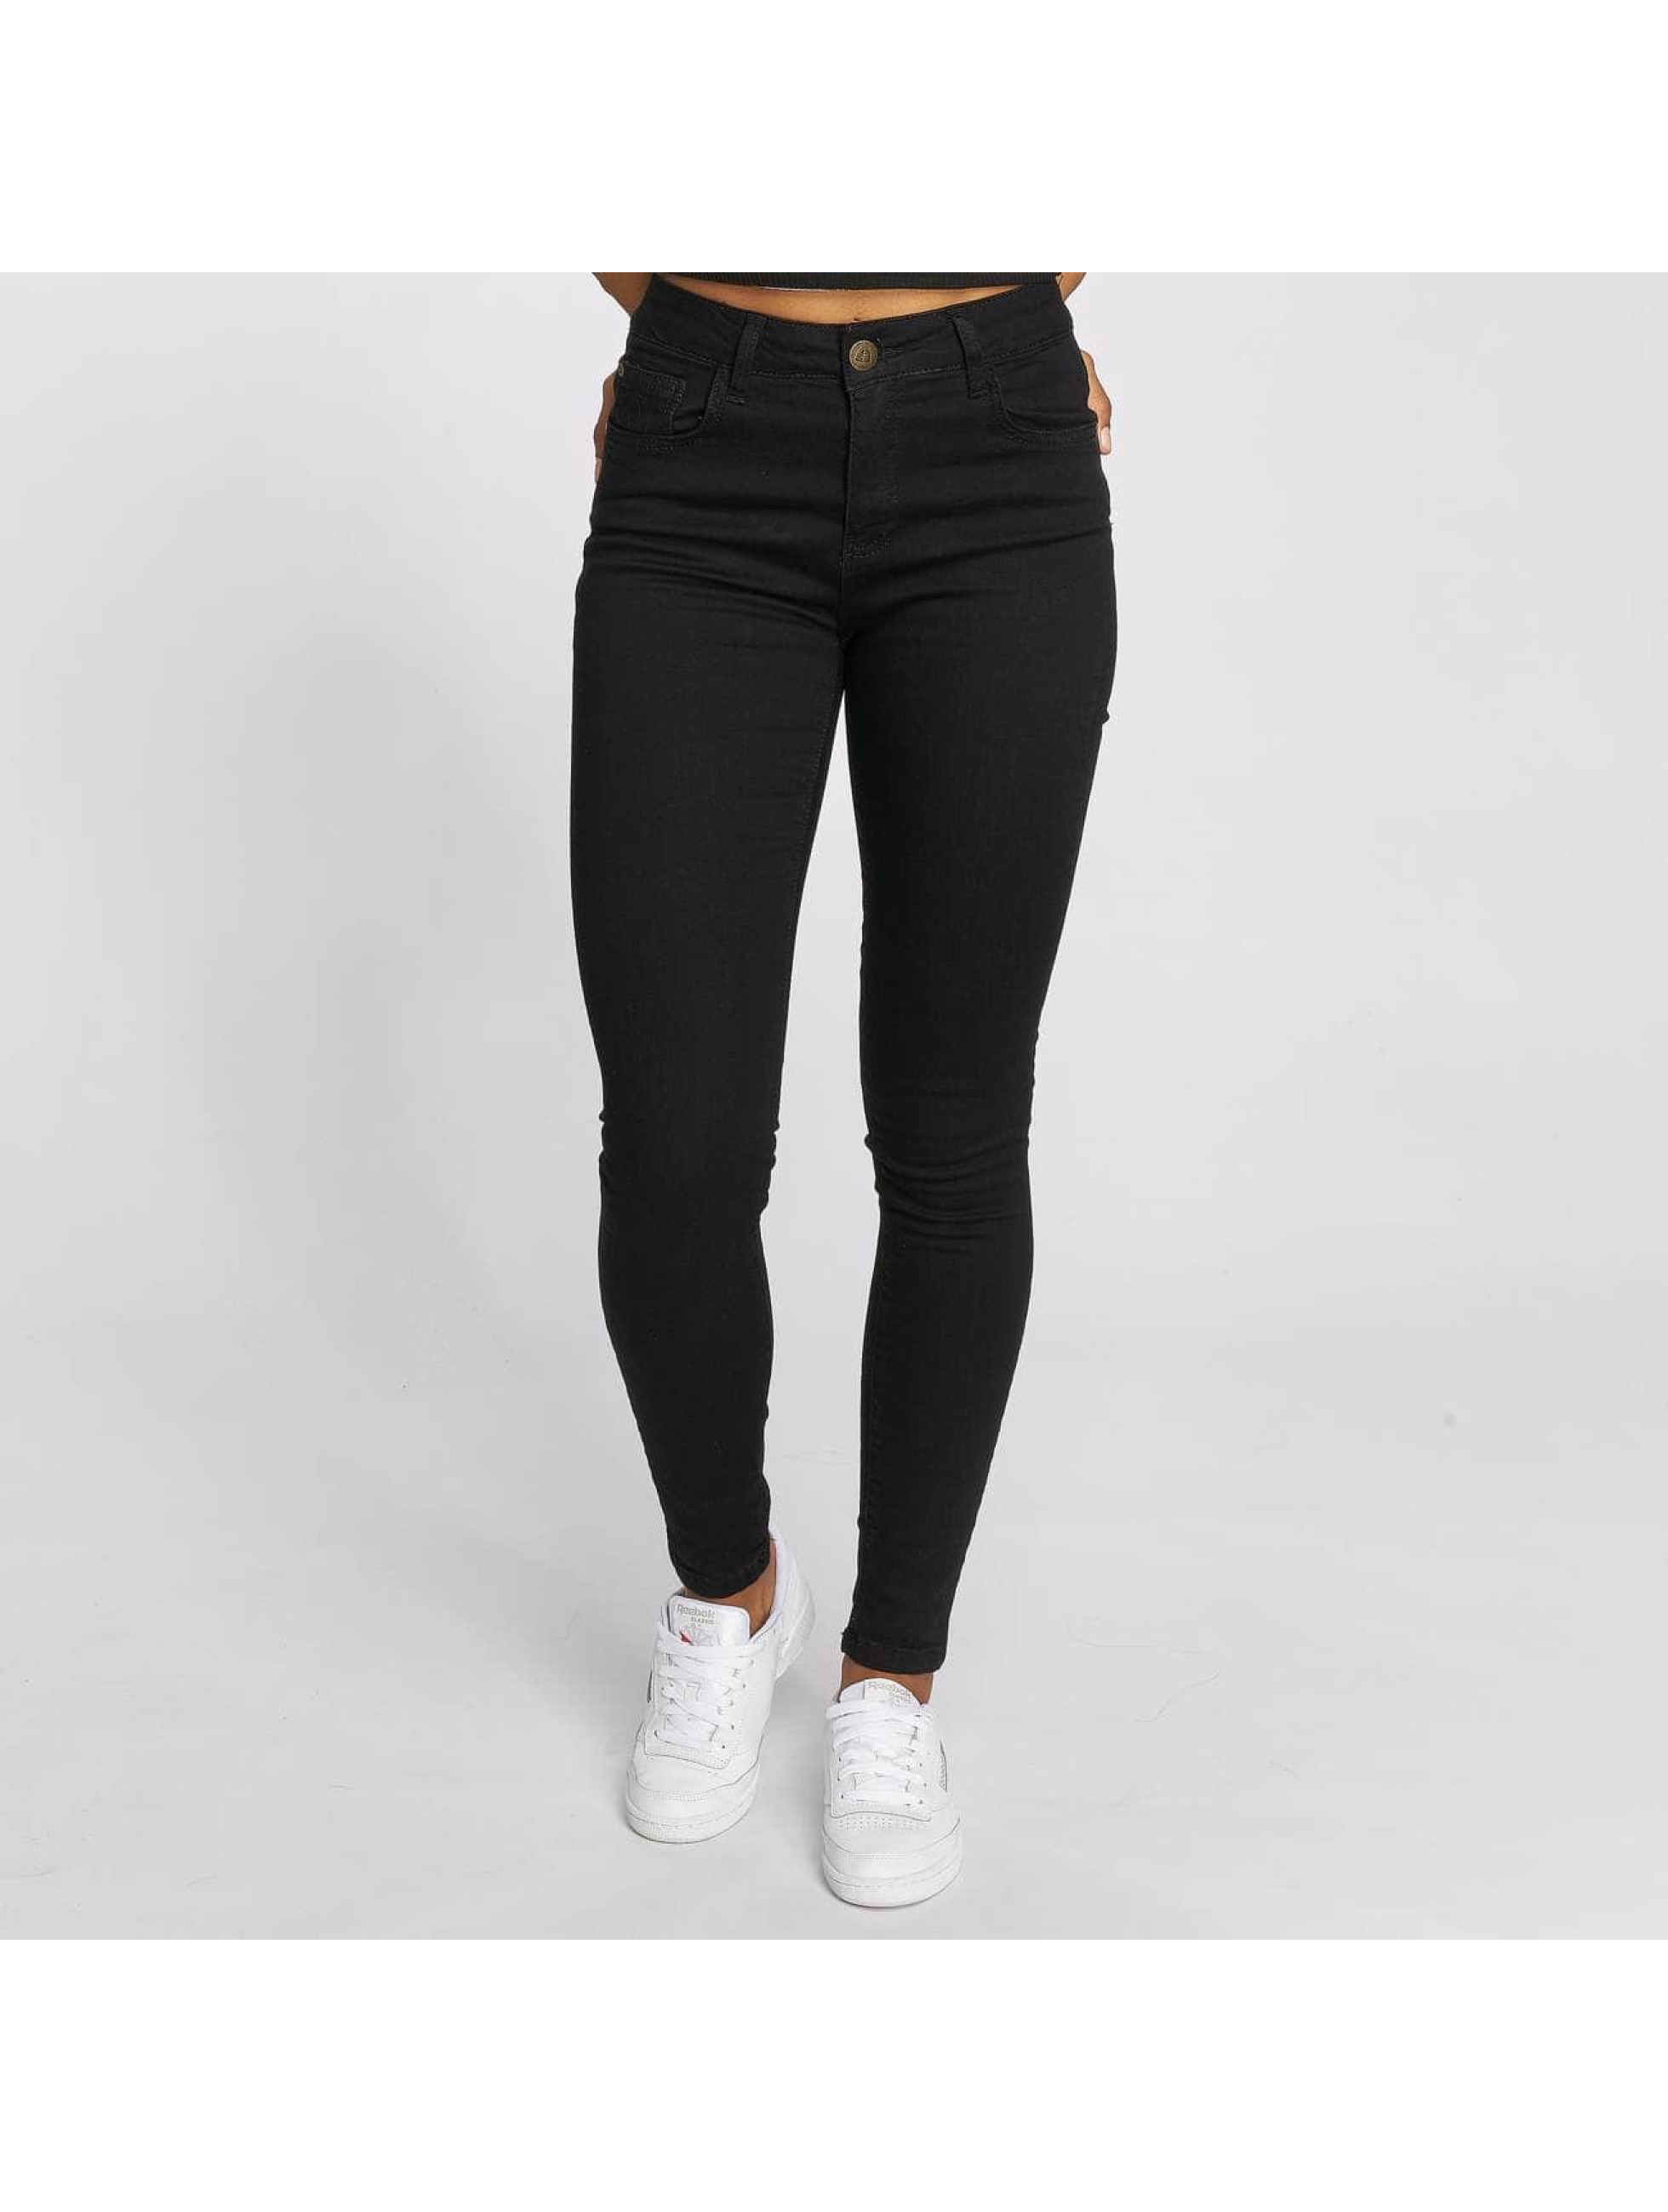 Just Rhyse / Skinny Jeans Buttercup in black W 32